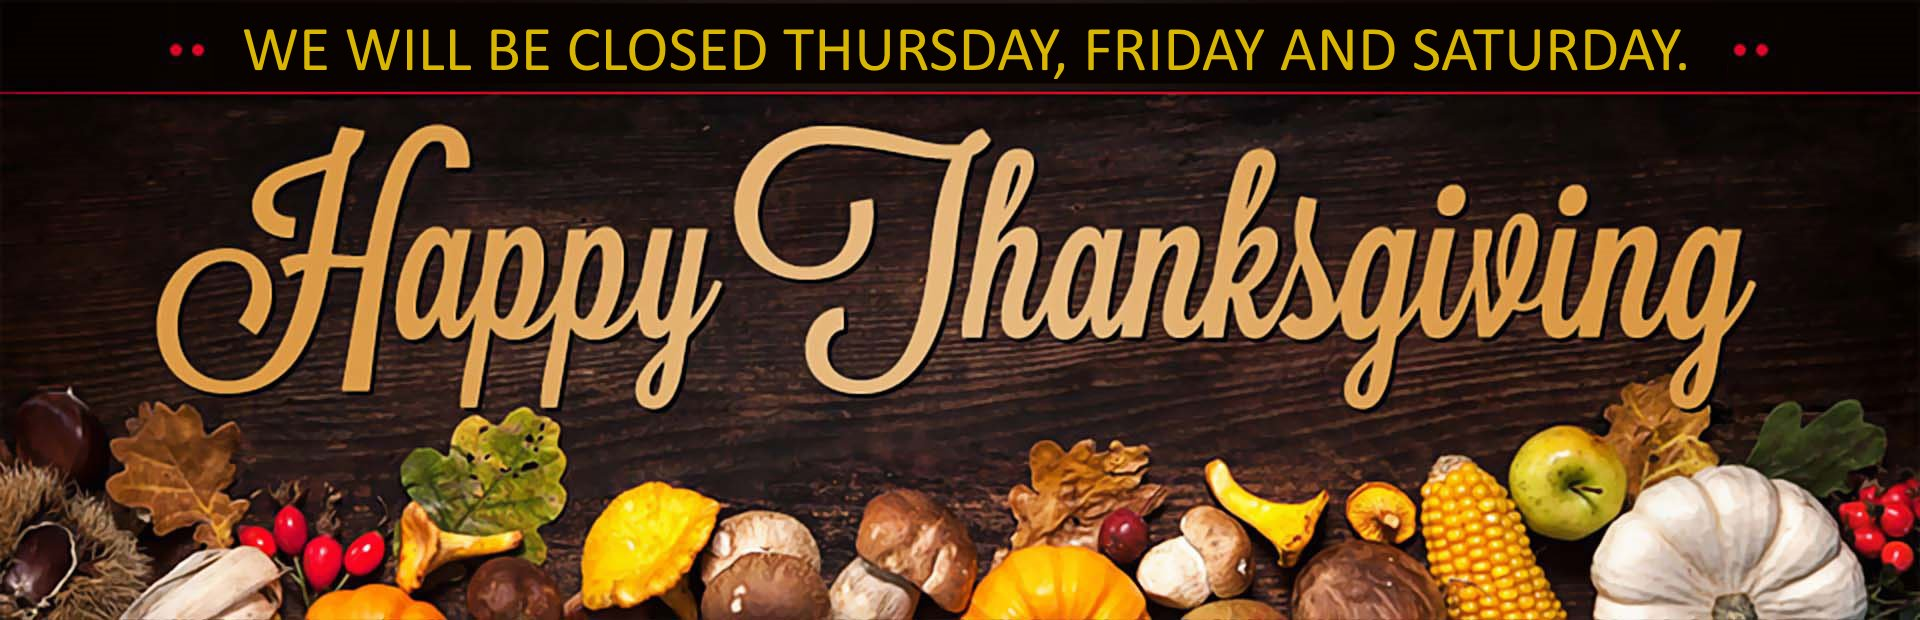 Happy Thanksgiving: We will be closed Thursday and Friday.